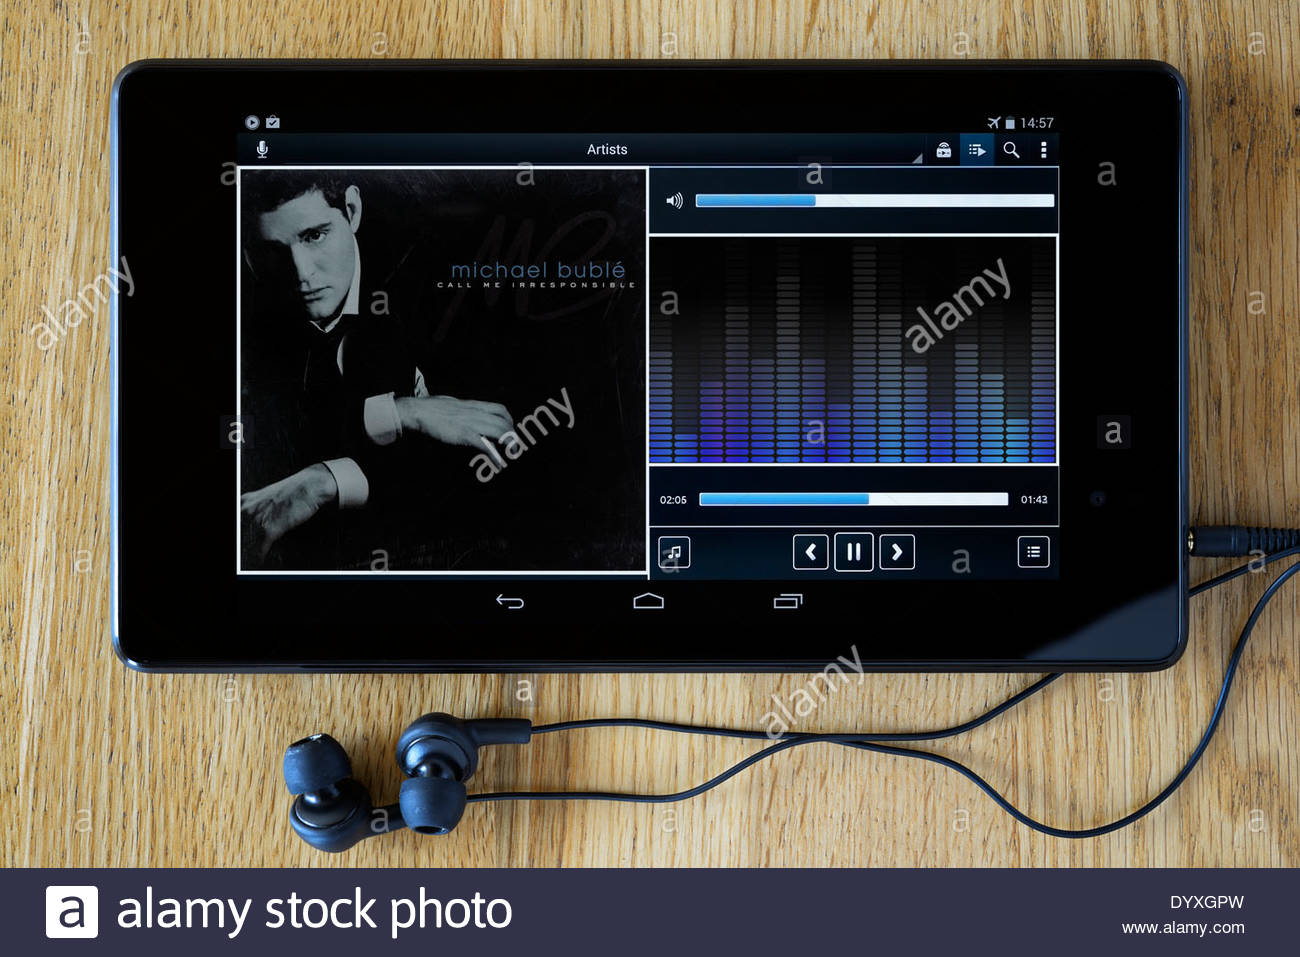 Michael Bublé Call Me Irresponsible MP3 album art on PC tablet, England - Stock Image